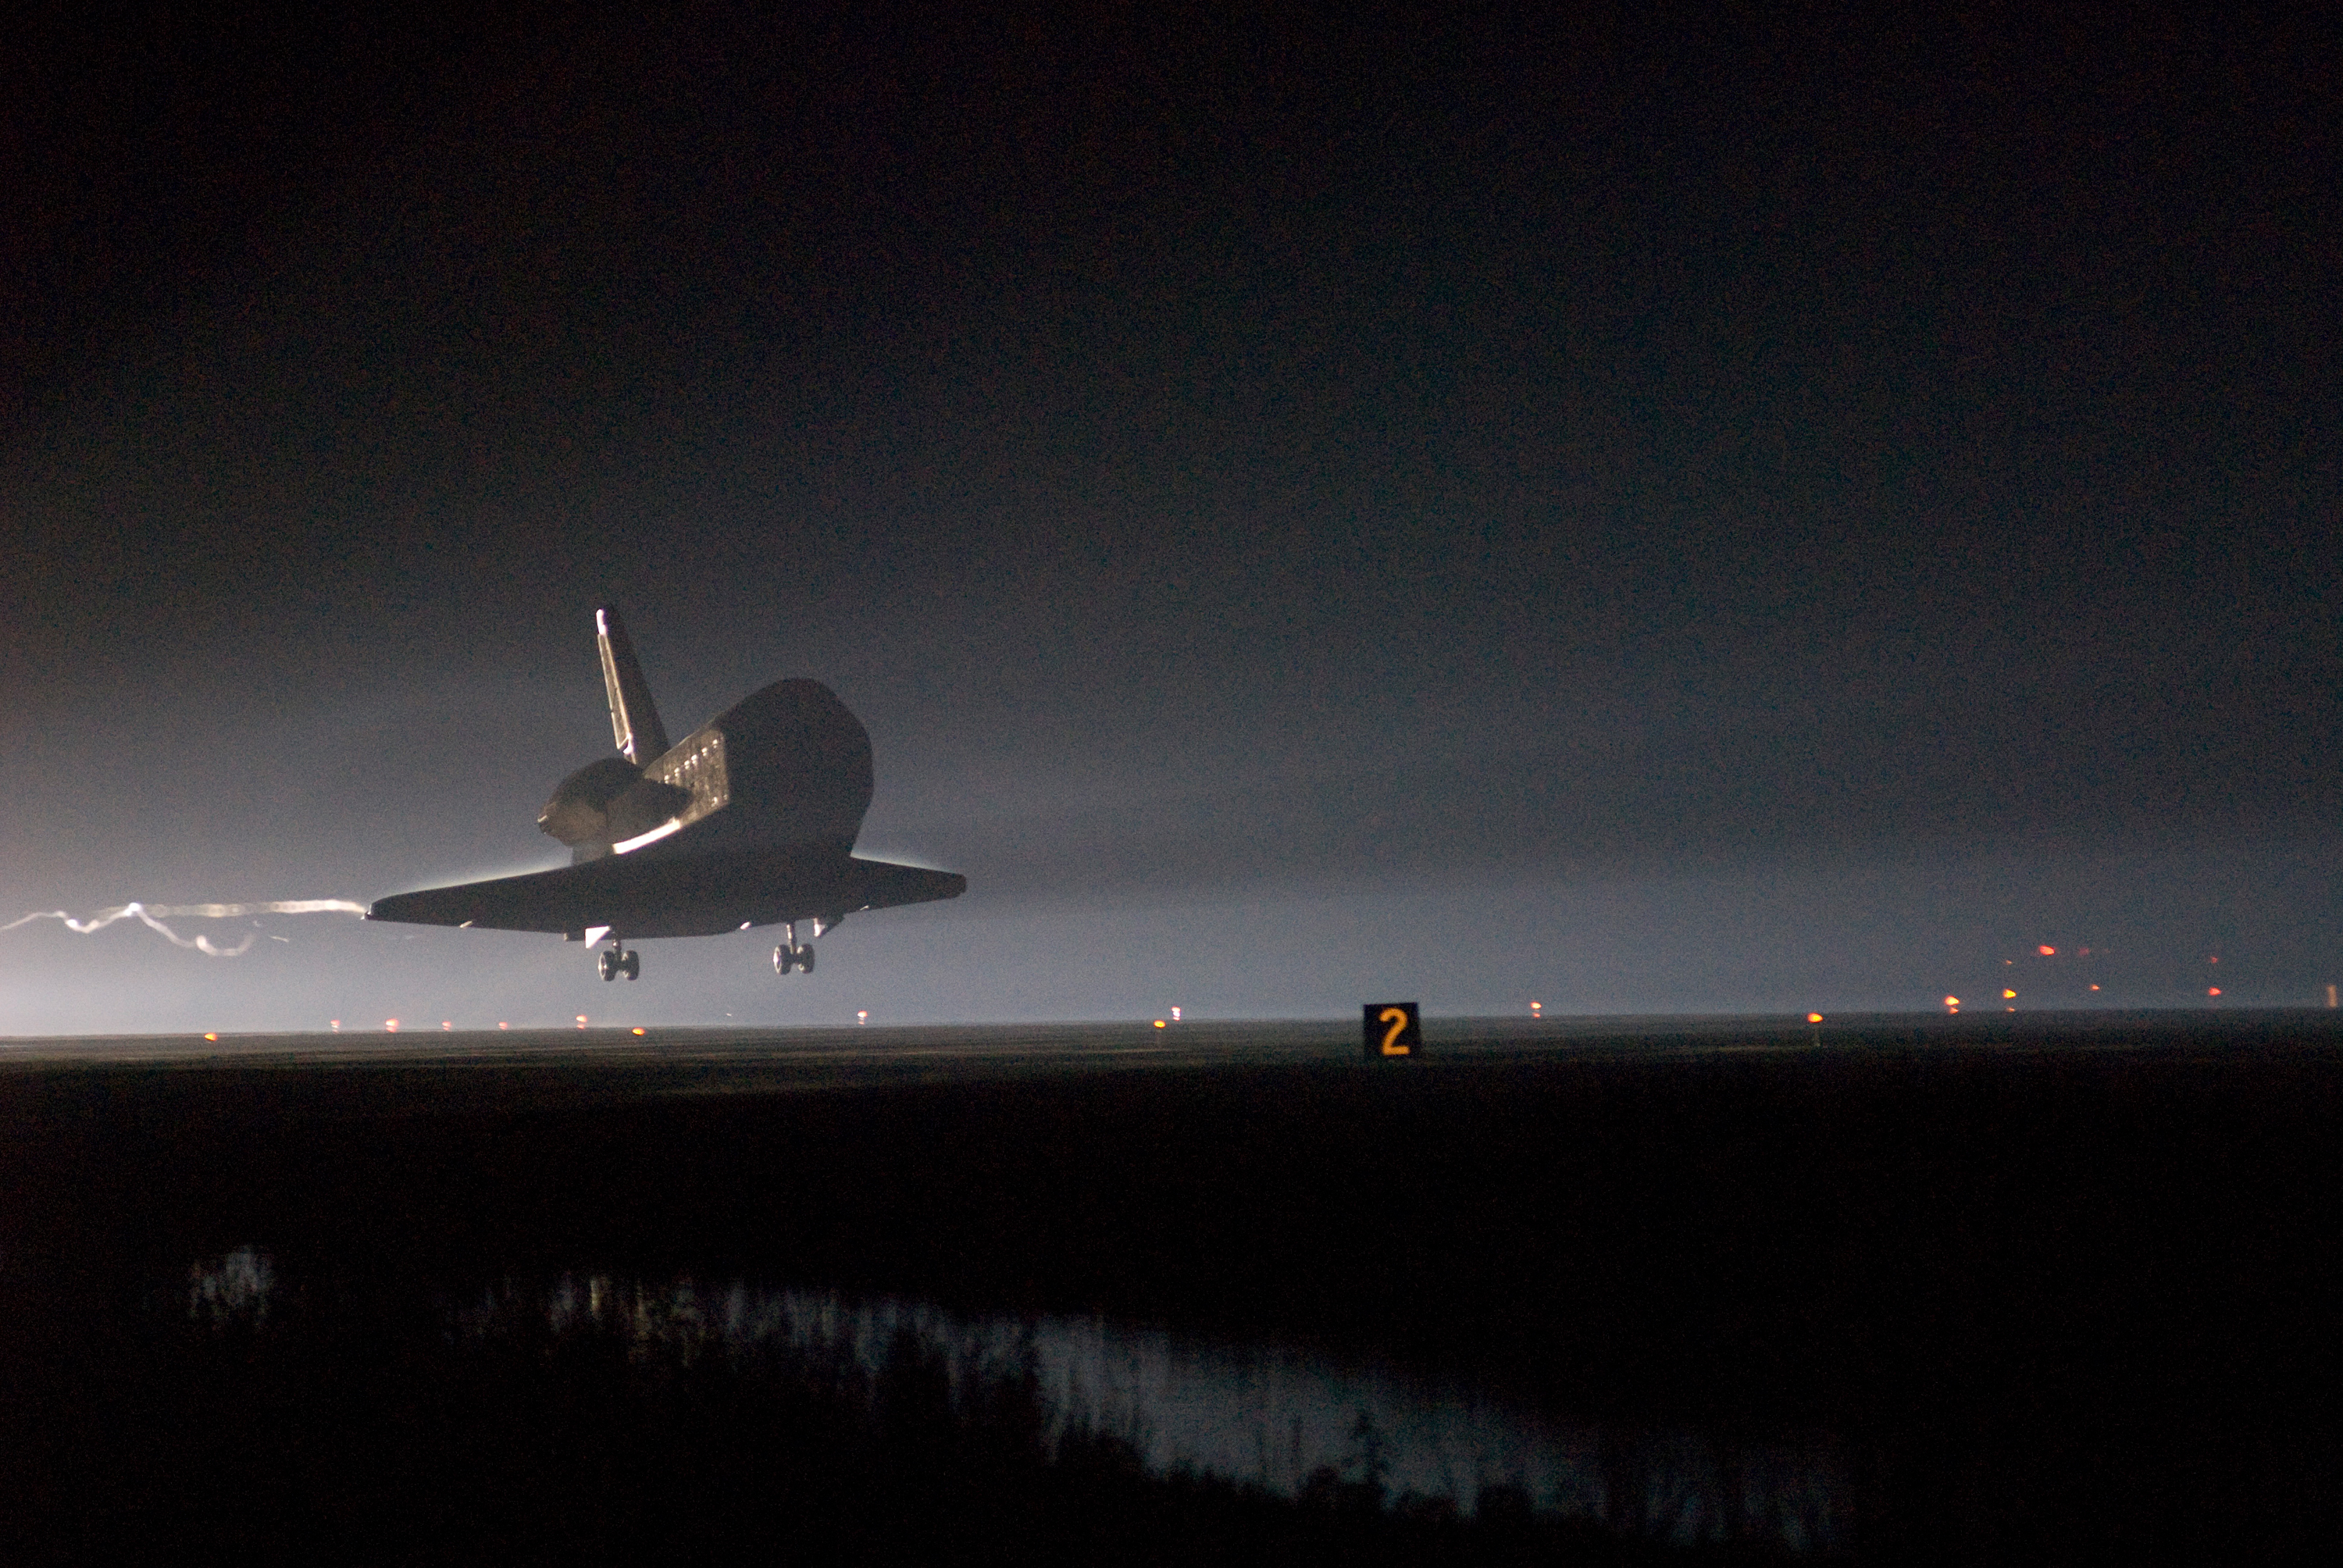 space shuttle landing explained - photo #43